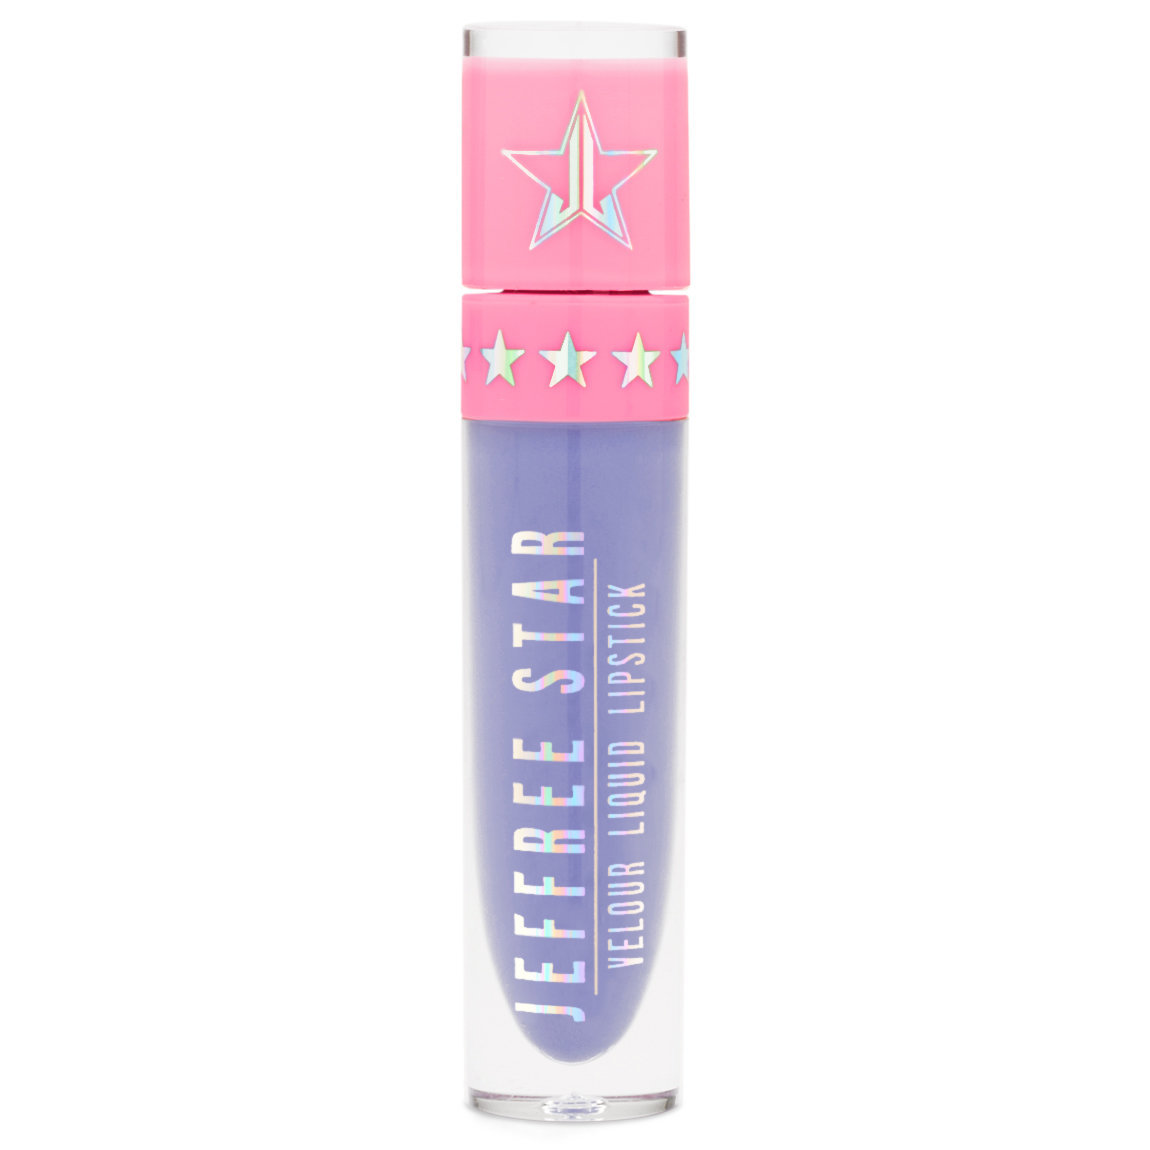 Jeffree Star Cosmetics Velour Liquid Lipstick Diamond